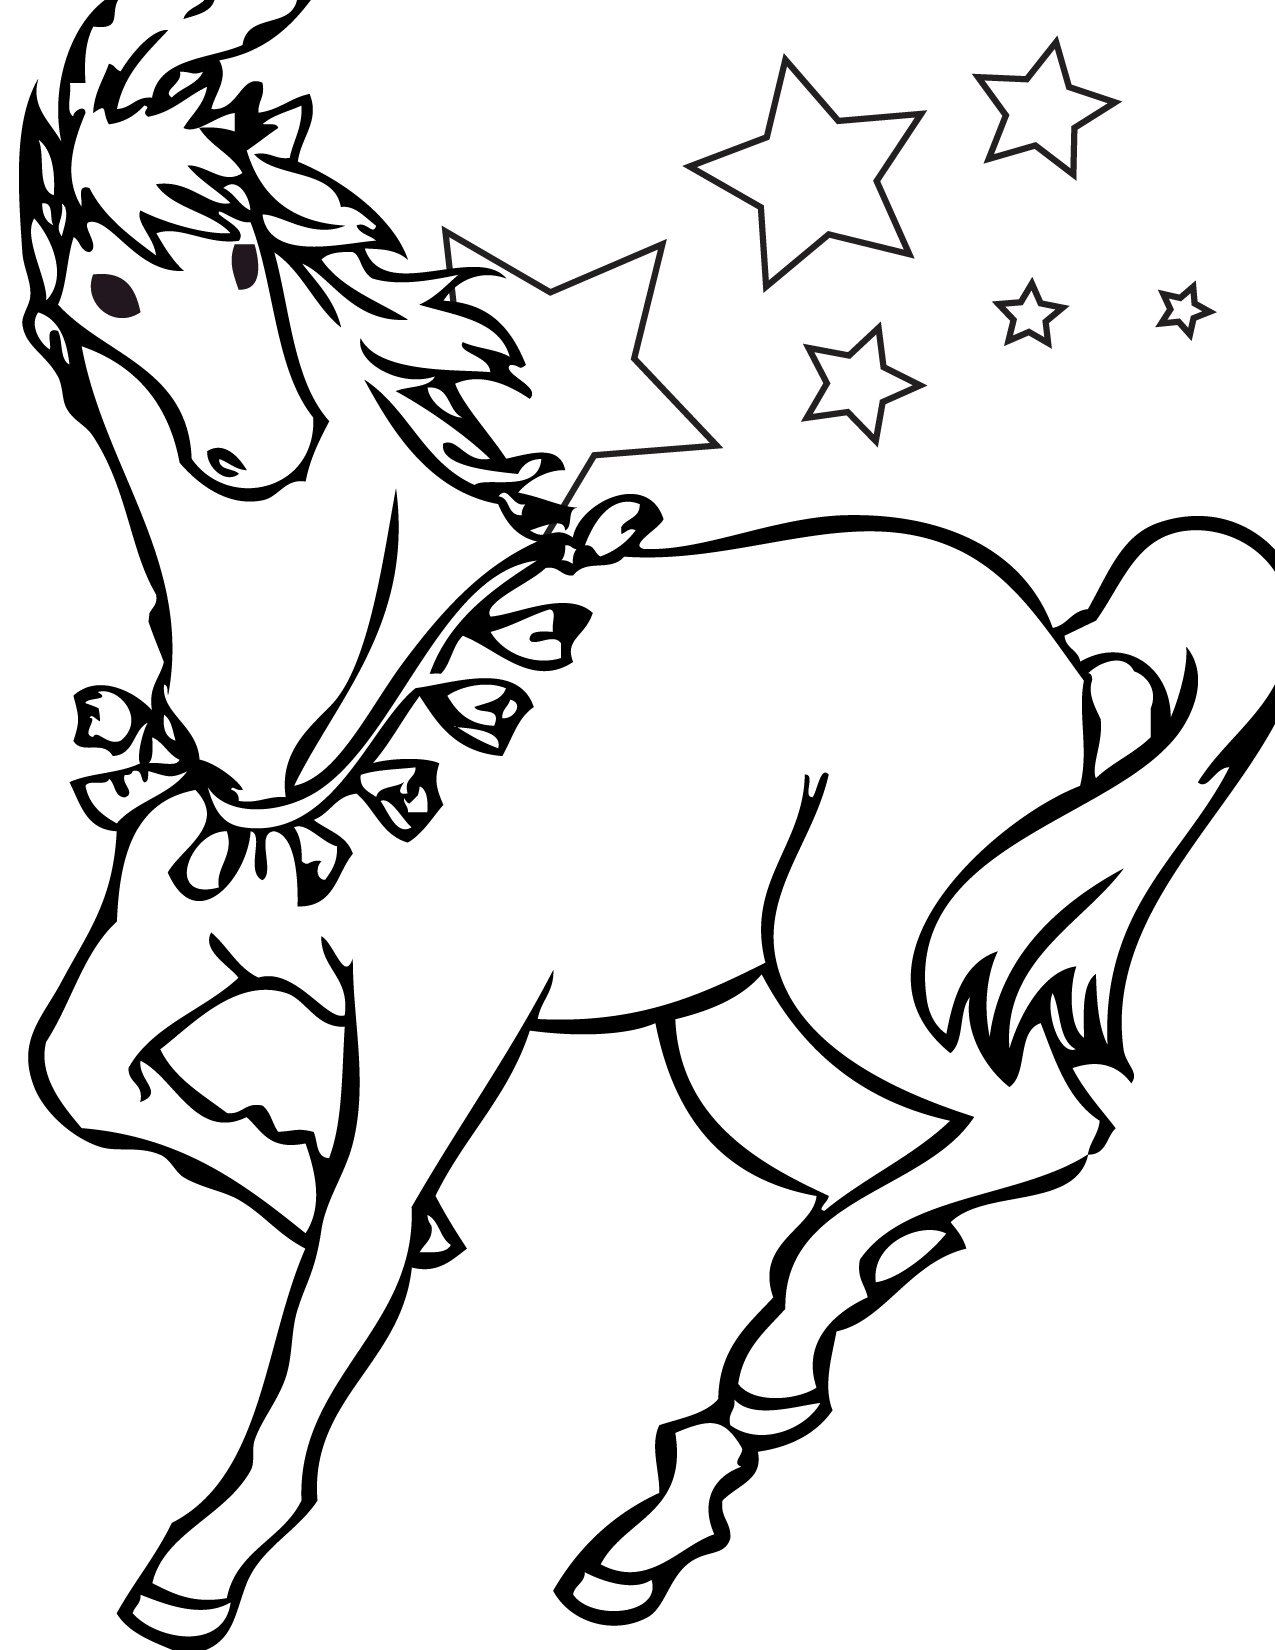 free printable coloring pages of horses horse coloring pages preschool and kindergarten pages of printable free coloring horses